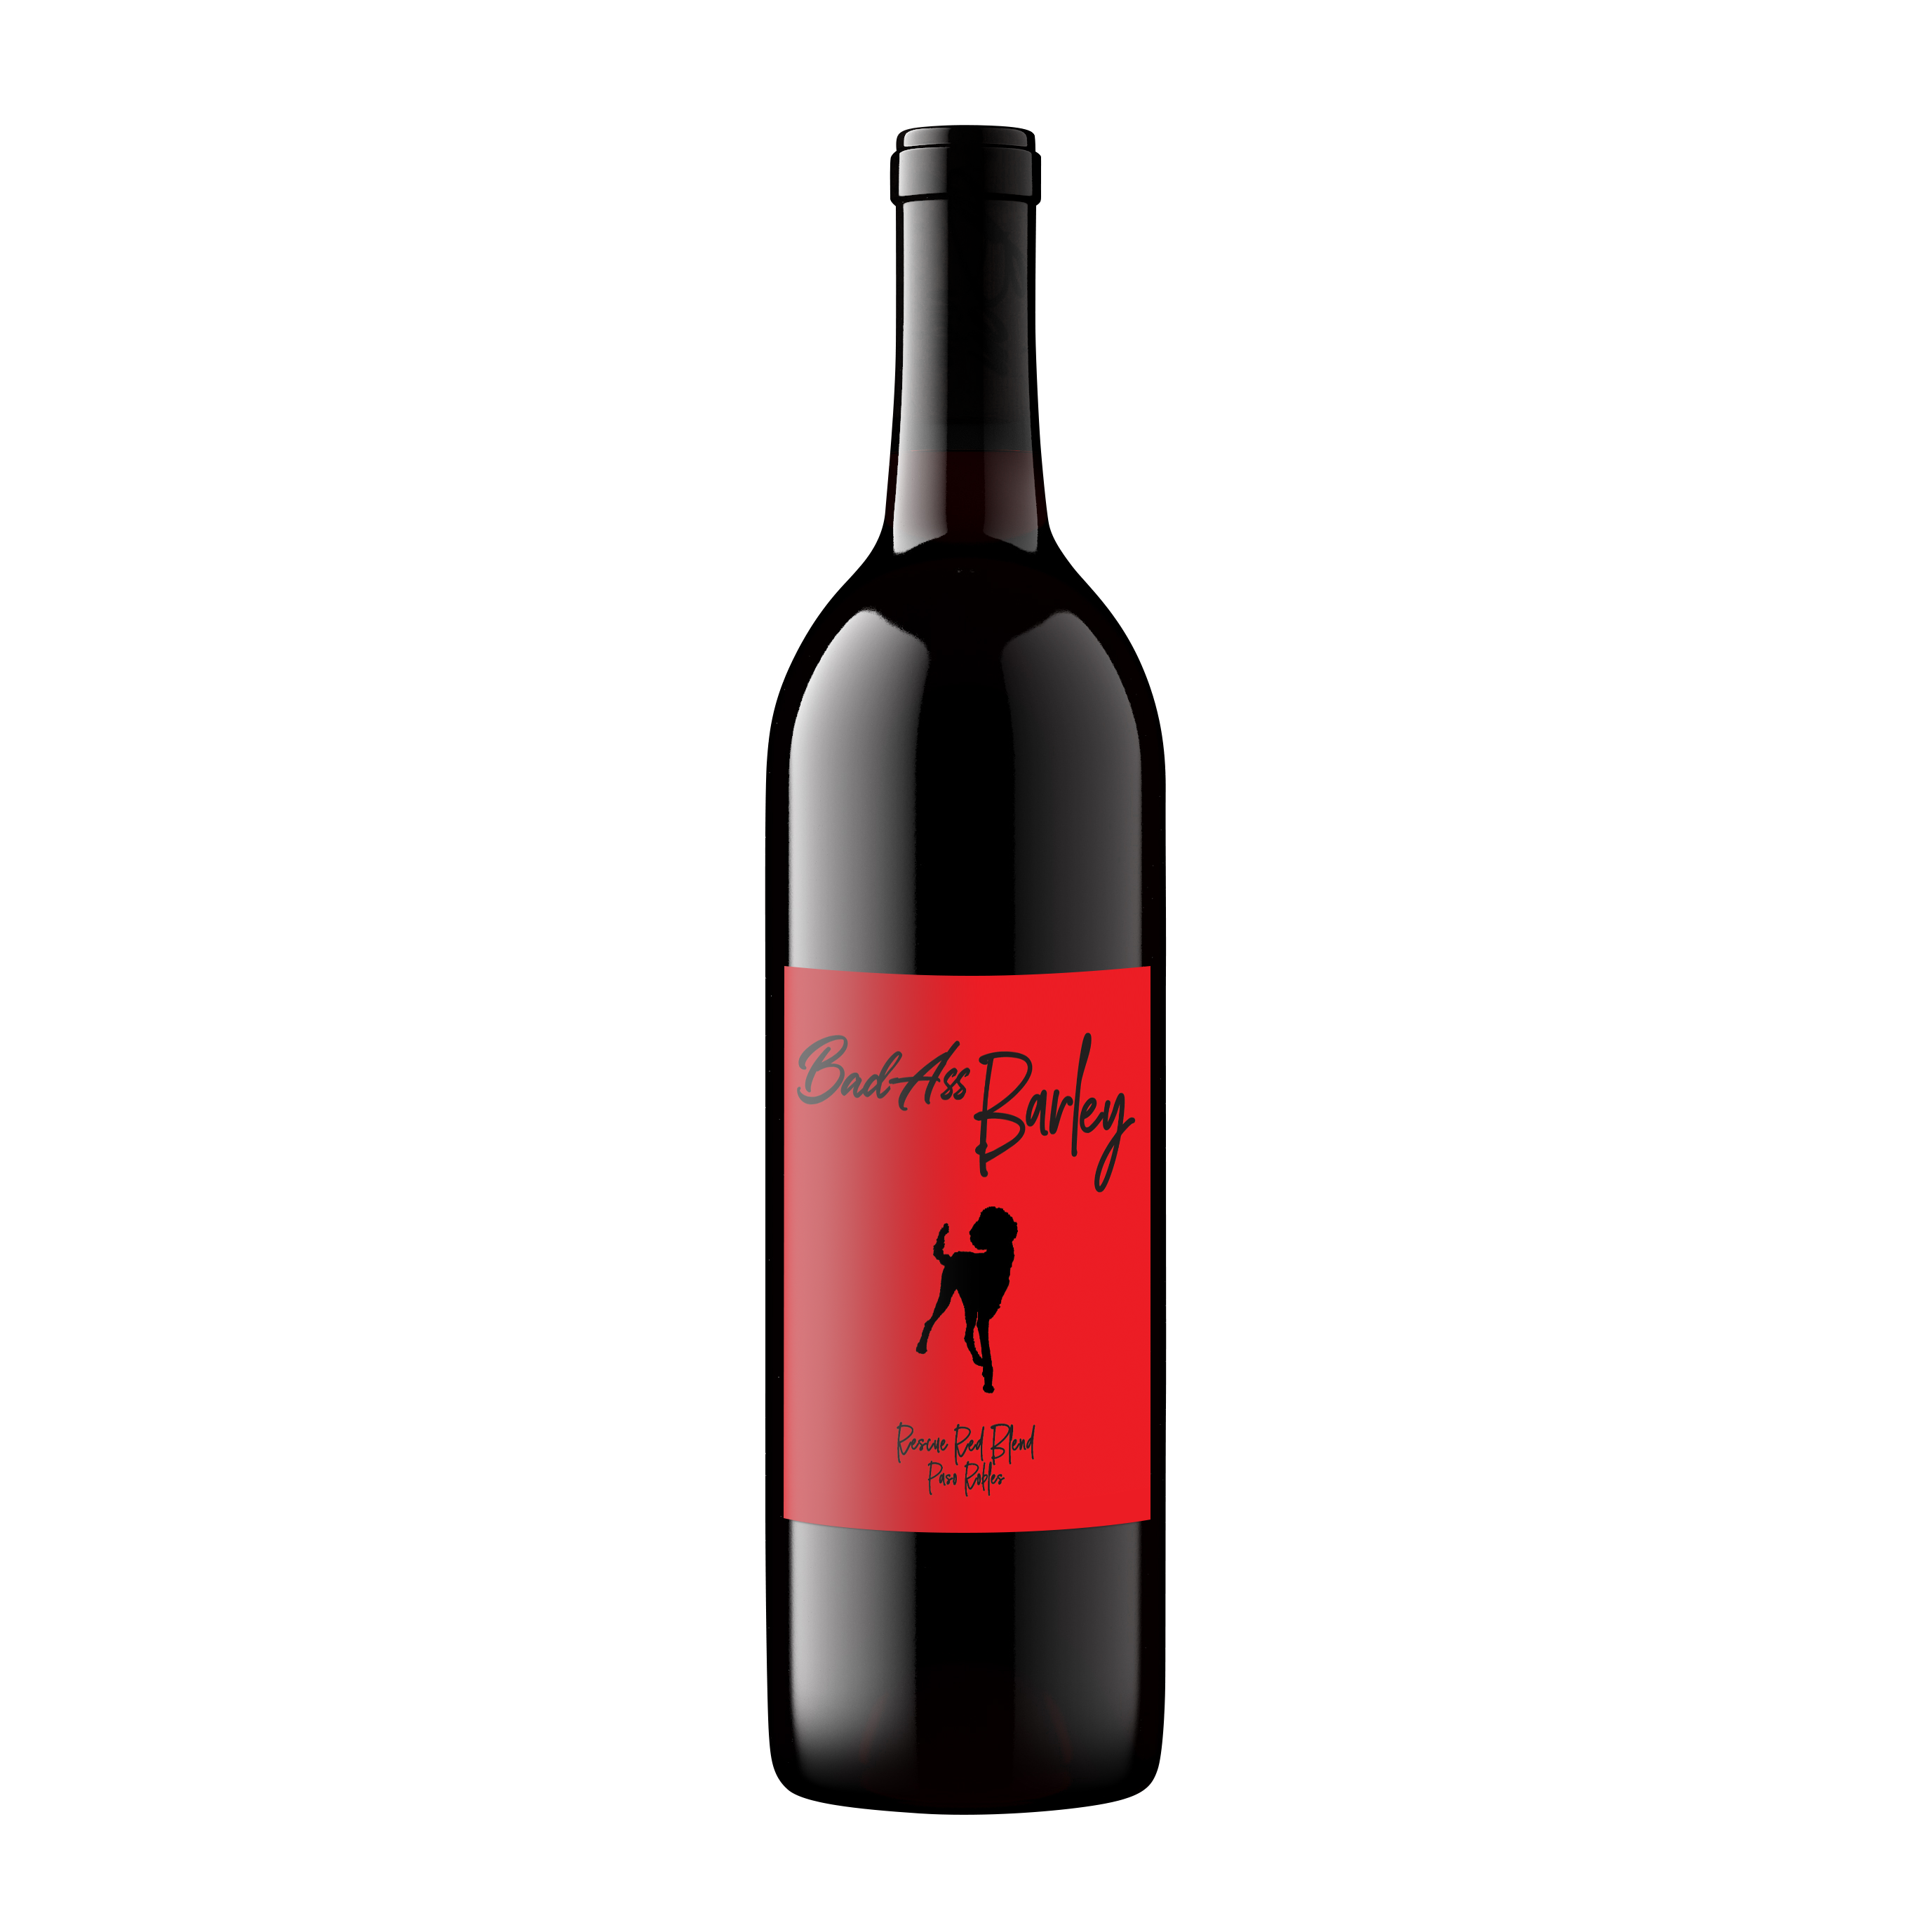 Bad Ass Barley – Rescue Red Blend bottle